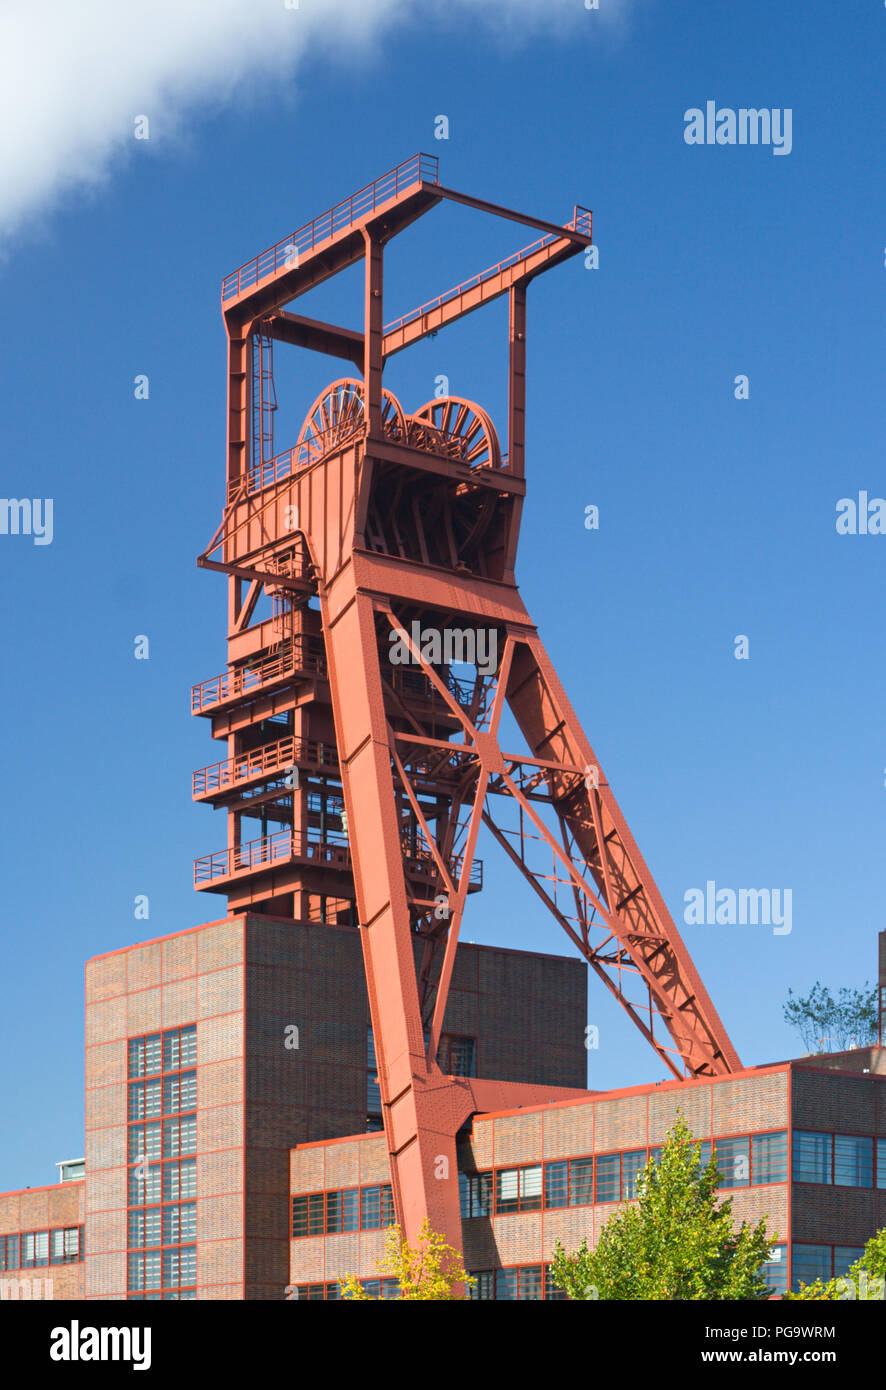 The tower of an old coal mine in Gelsenkirchen, Germany. - Stock Image